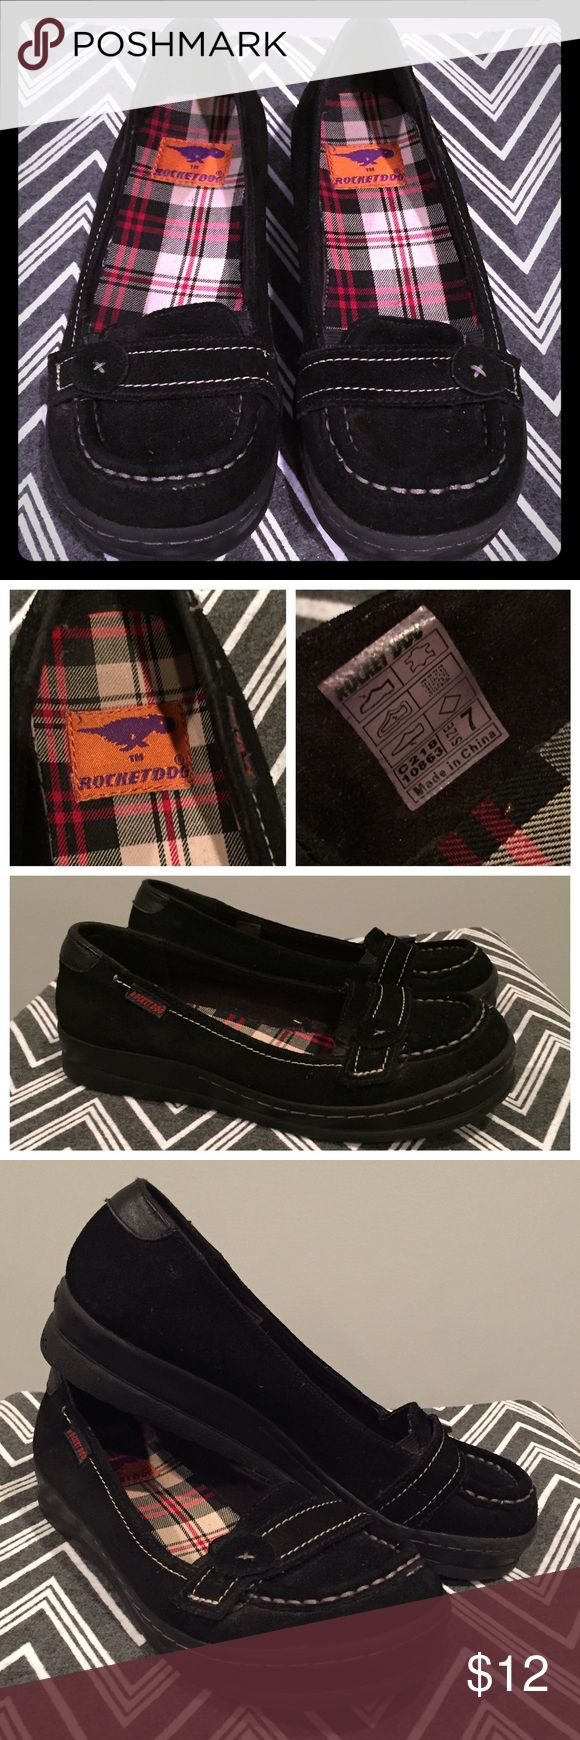 Rocket Dog black loafer Cute, slight wedge loafer with stitched button accent. Worn a few times. Good condition, clean soles. Women's size 7. Rocket Dog Shoes Flats & Loafers